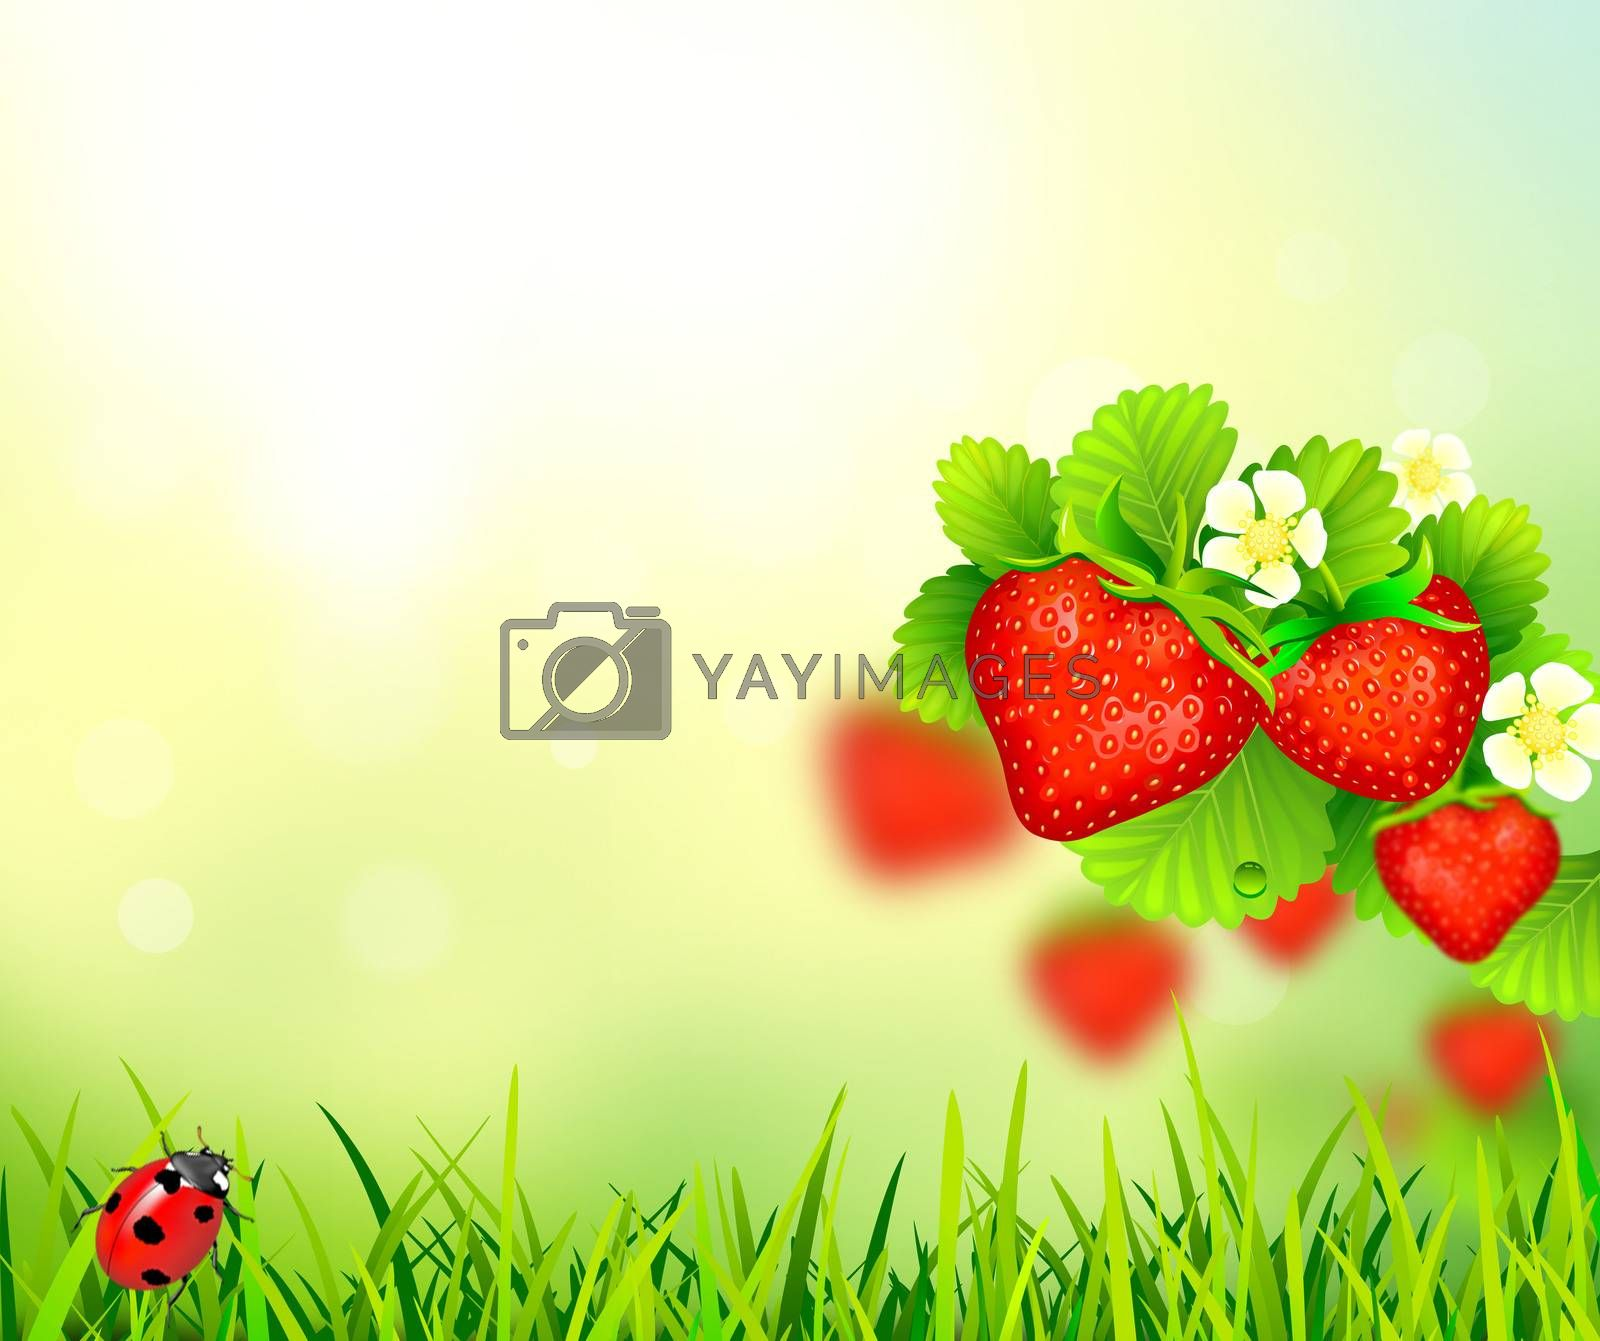 Summer background with strawberry. Strawberries on an abstract background.